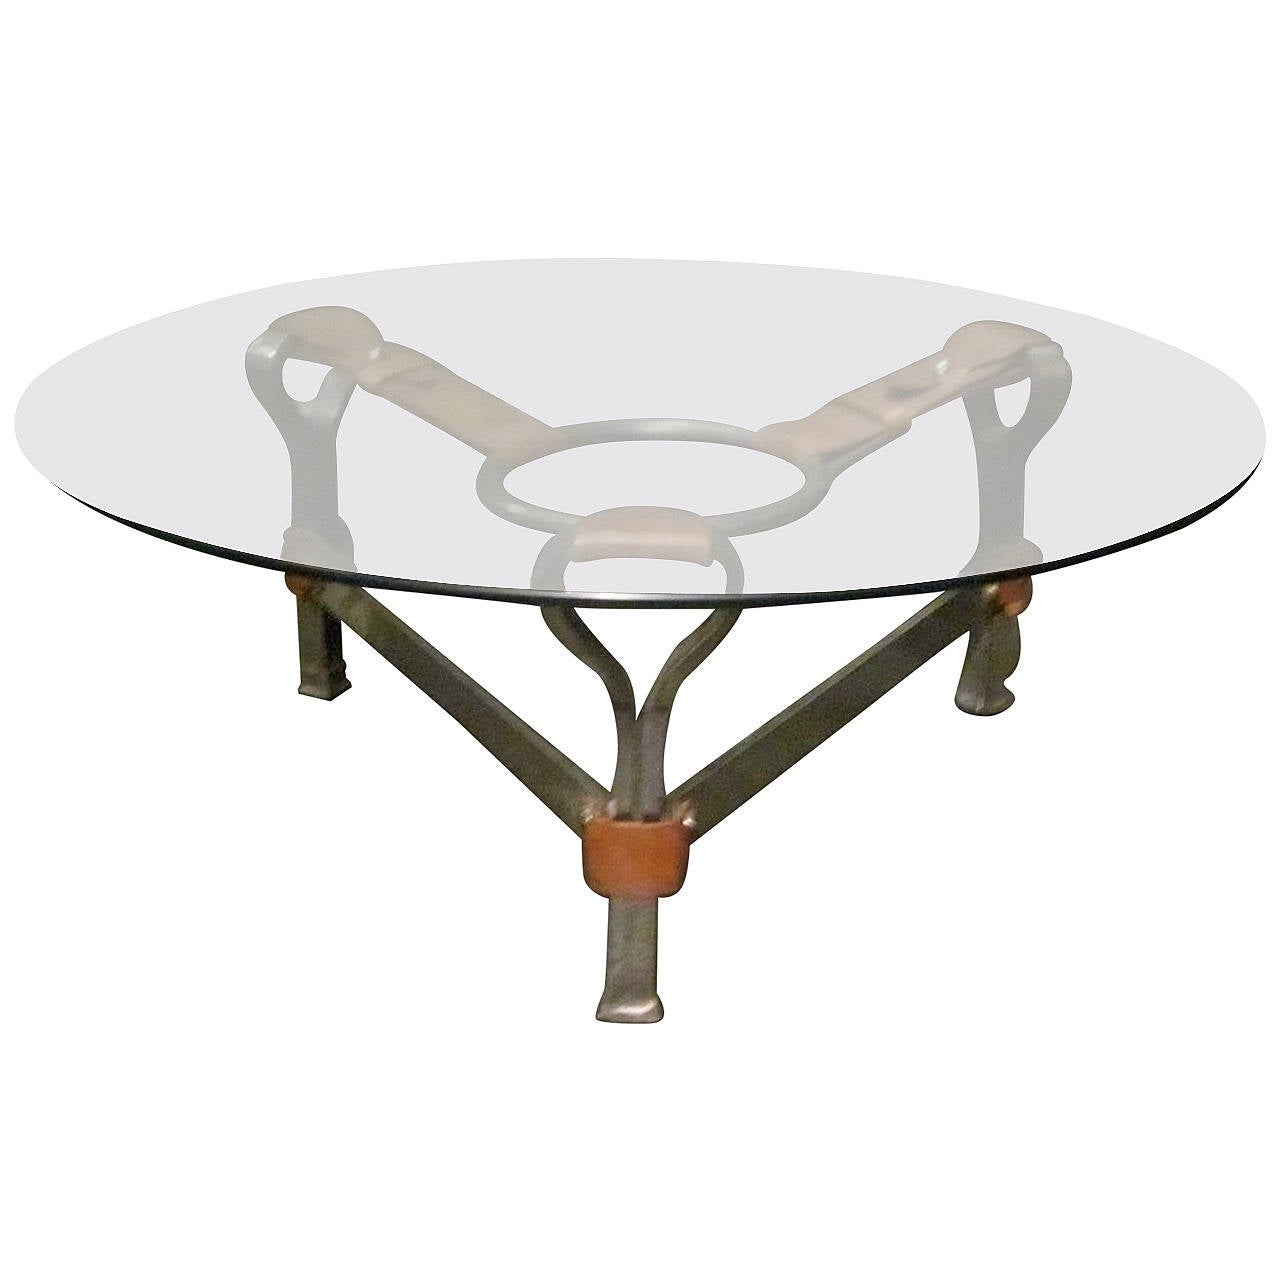 1970s Leather And Steel Base Round Glass Top Coffee Table Belgium At 1stdibs